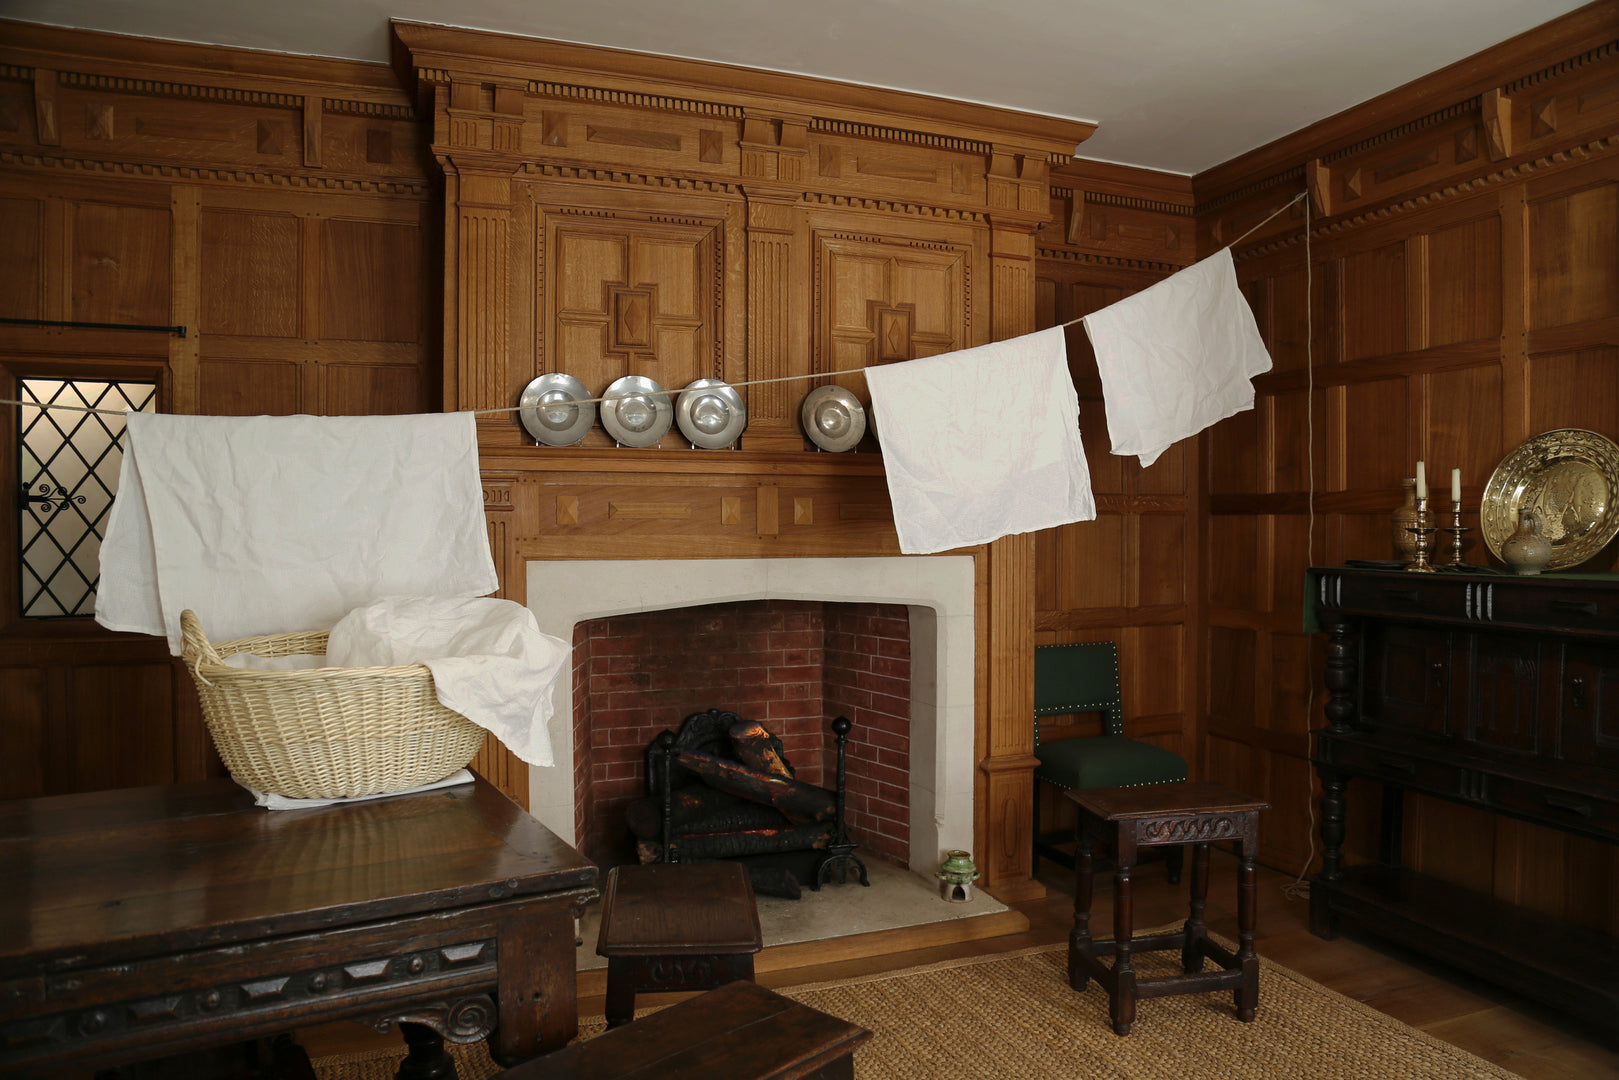 Installation photograph from Swept Under the Carpet? Servants in London households, 1600-2000 showing the interventions in the period rooms